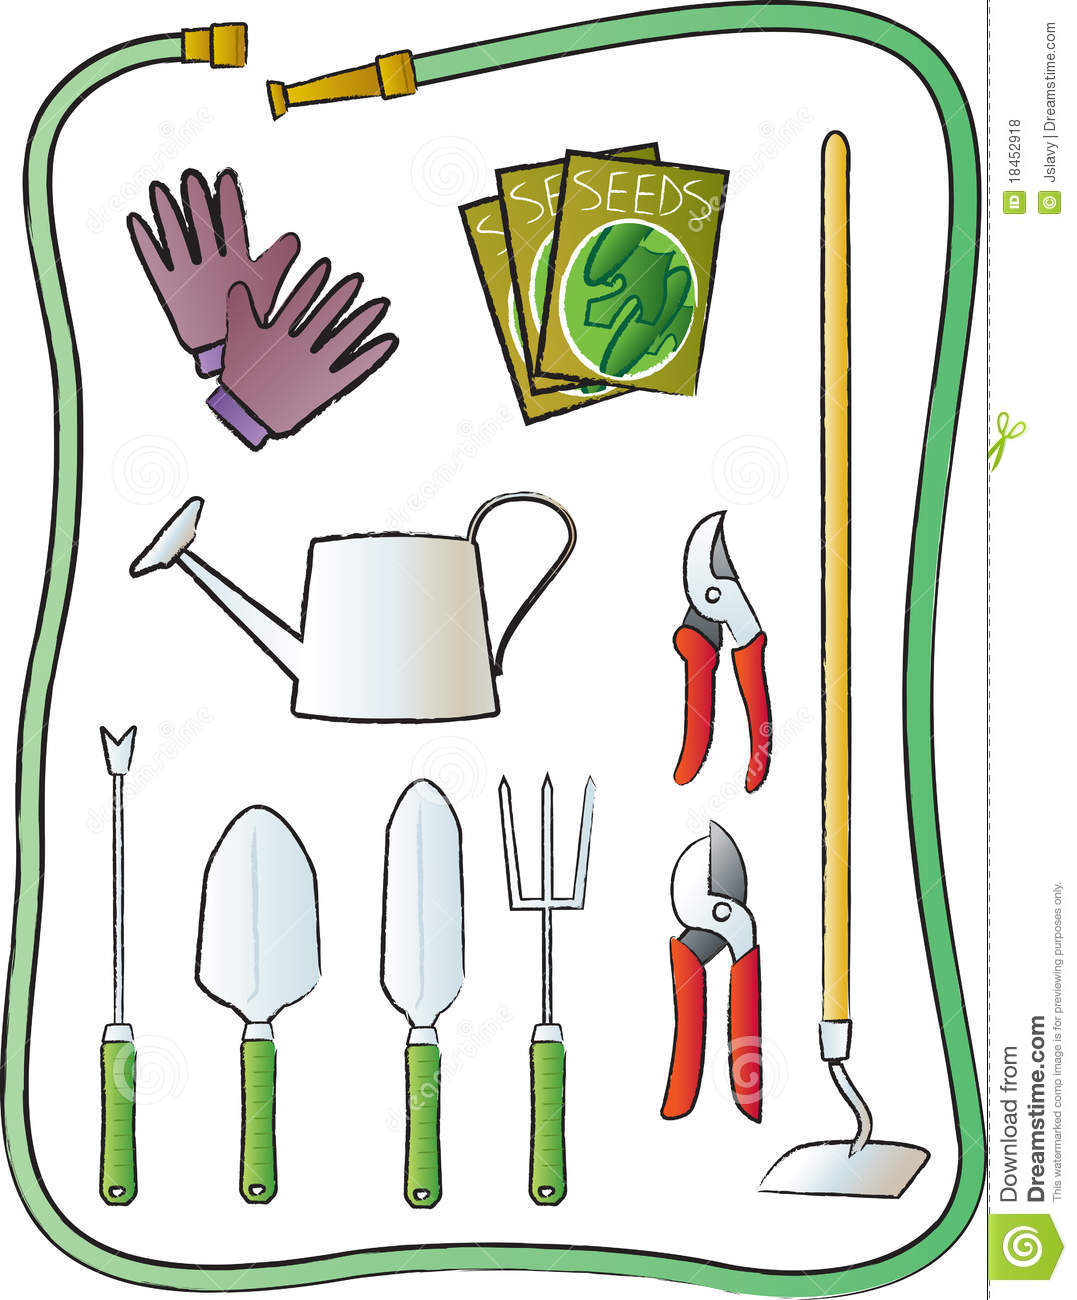 Gardening tools royalty free stock photos image 18452918 for Common garden hand tools